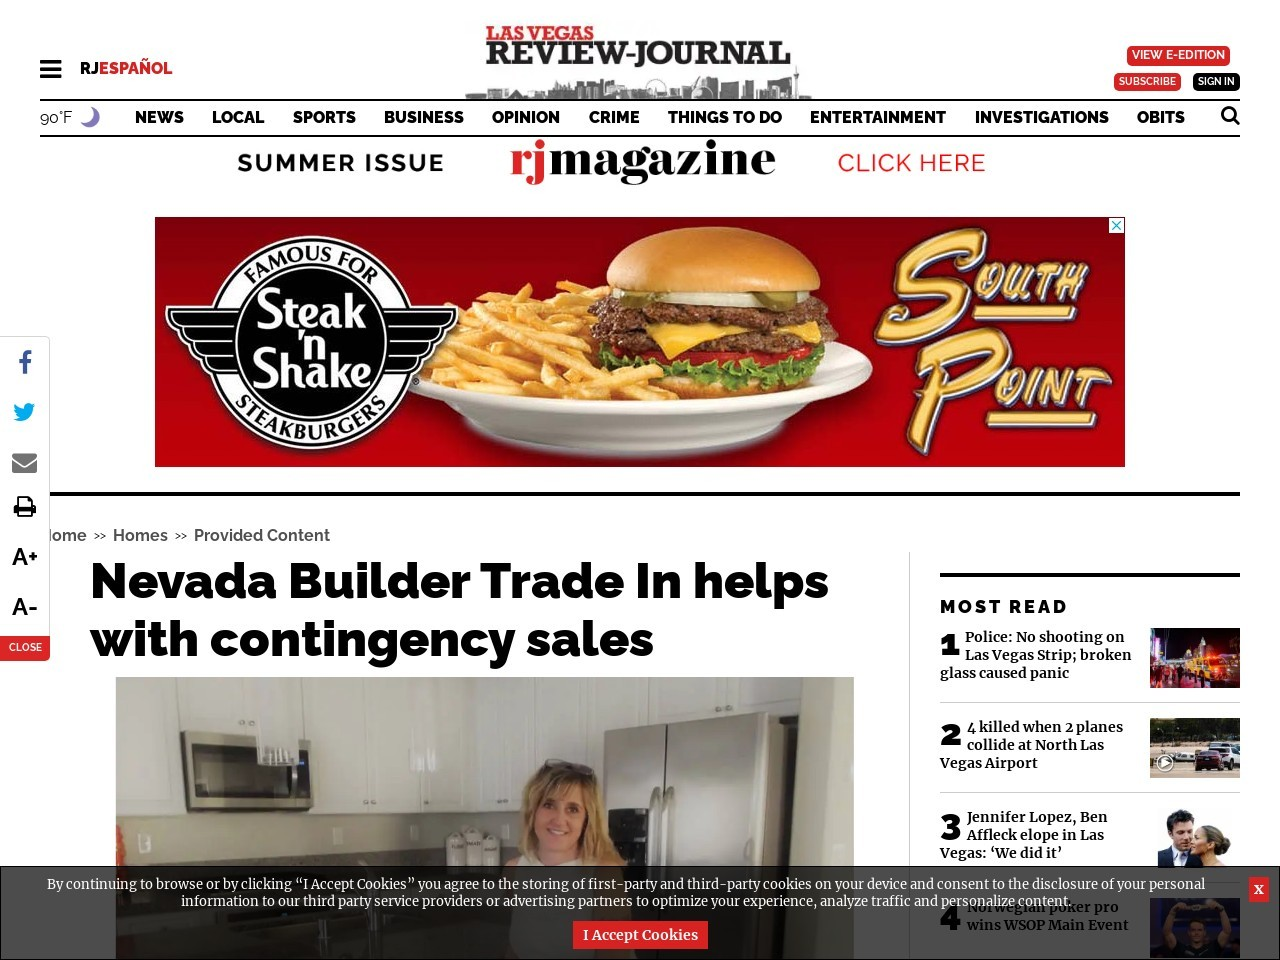 Nevada Builder Trade In helps with contingency sales